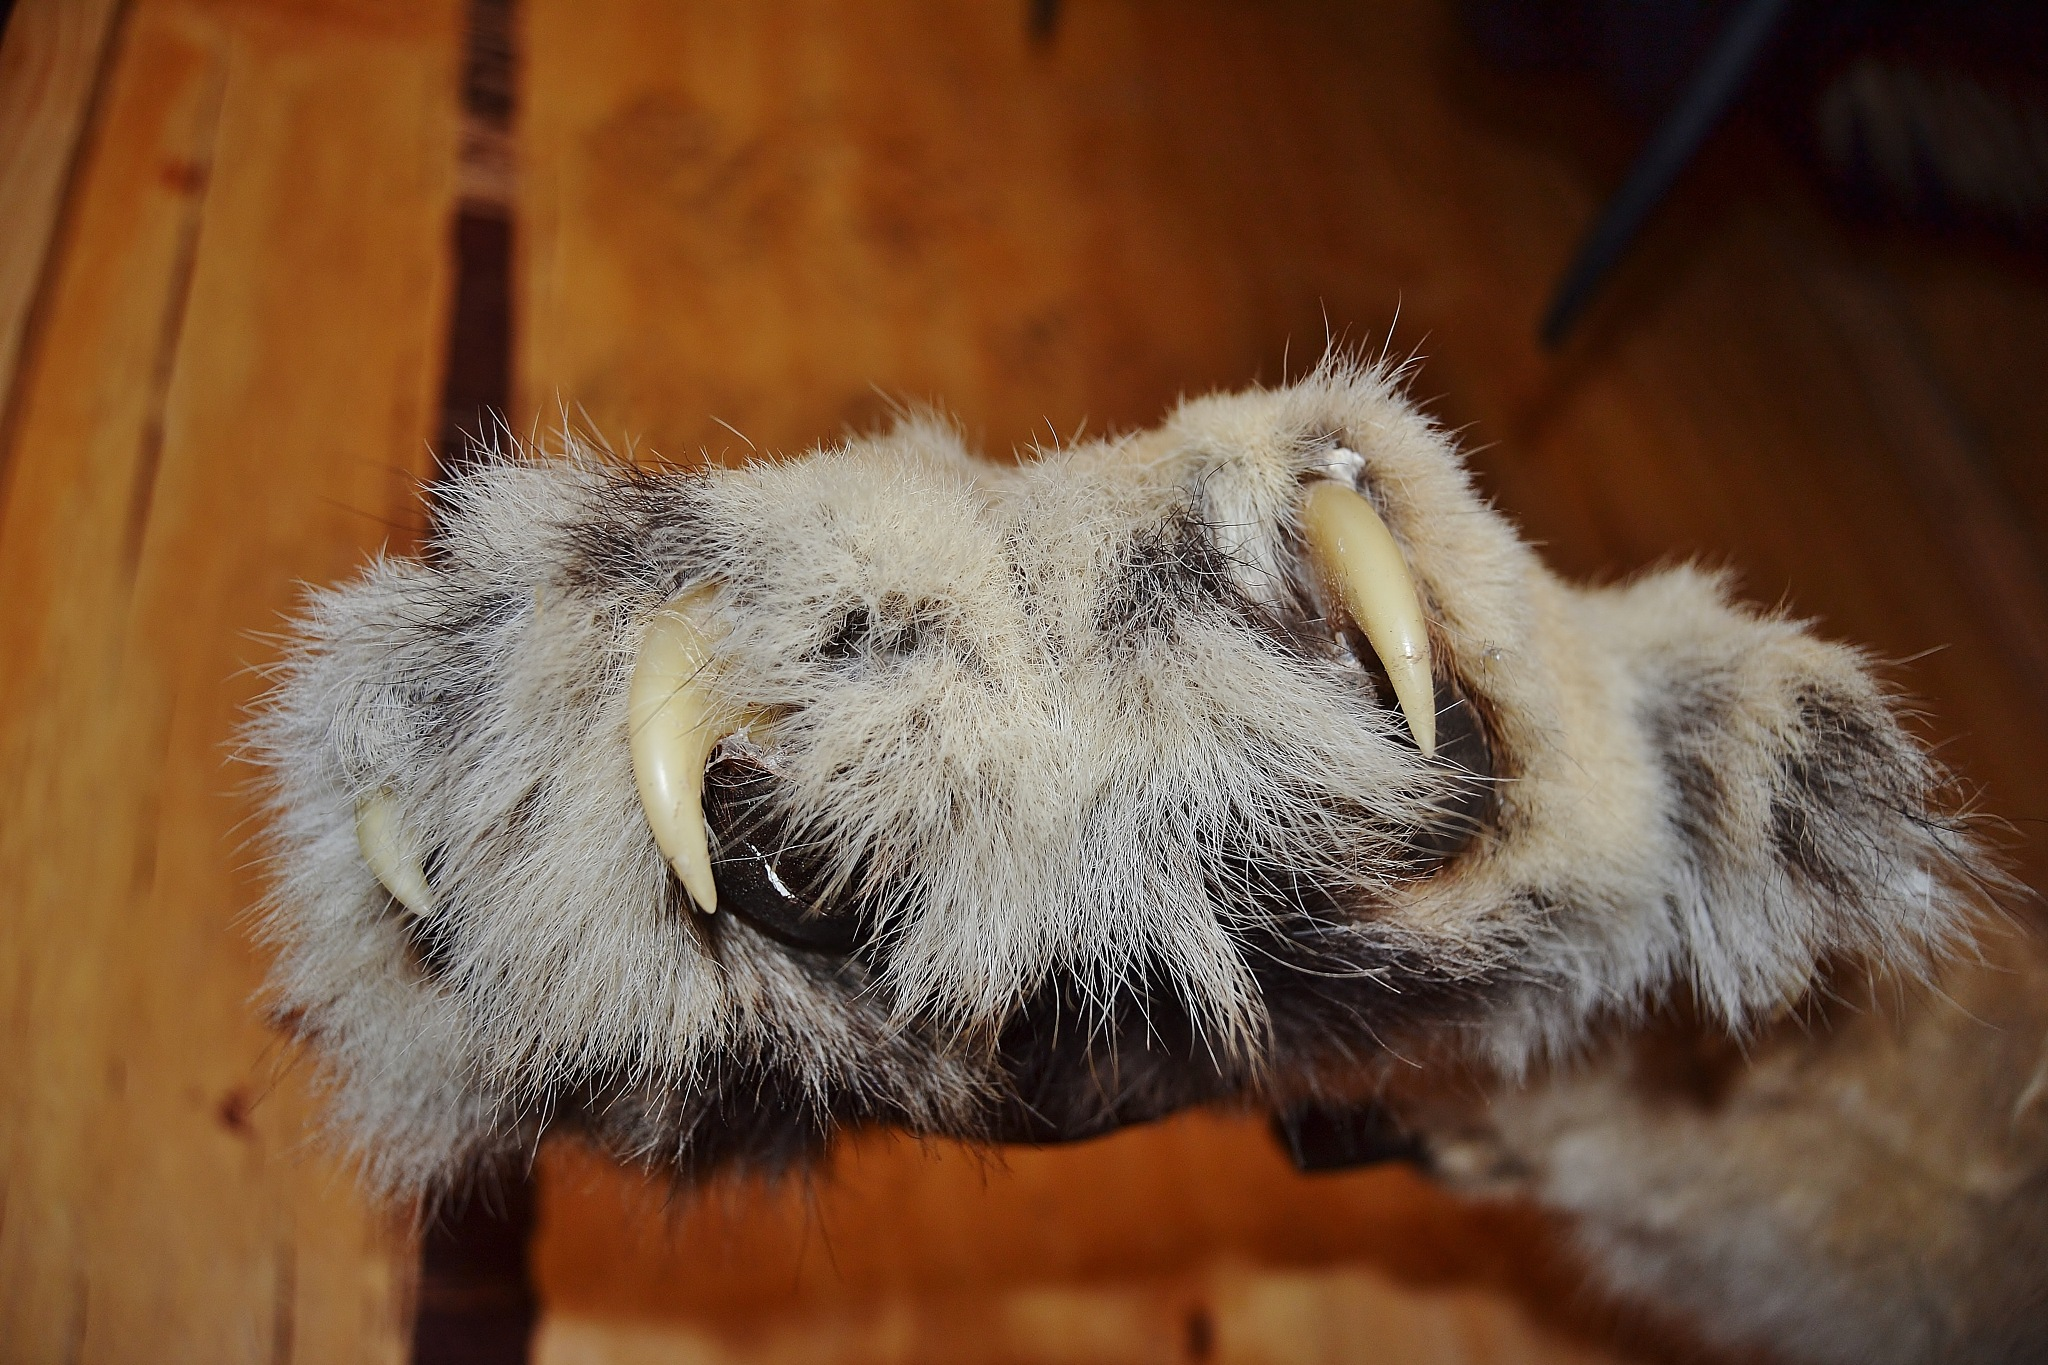 paw of the lion by stefan.andersson3